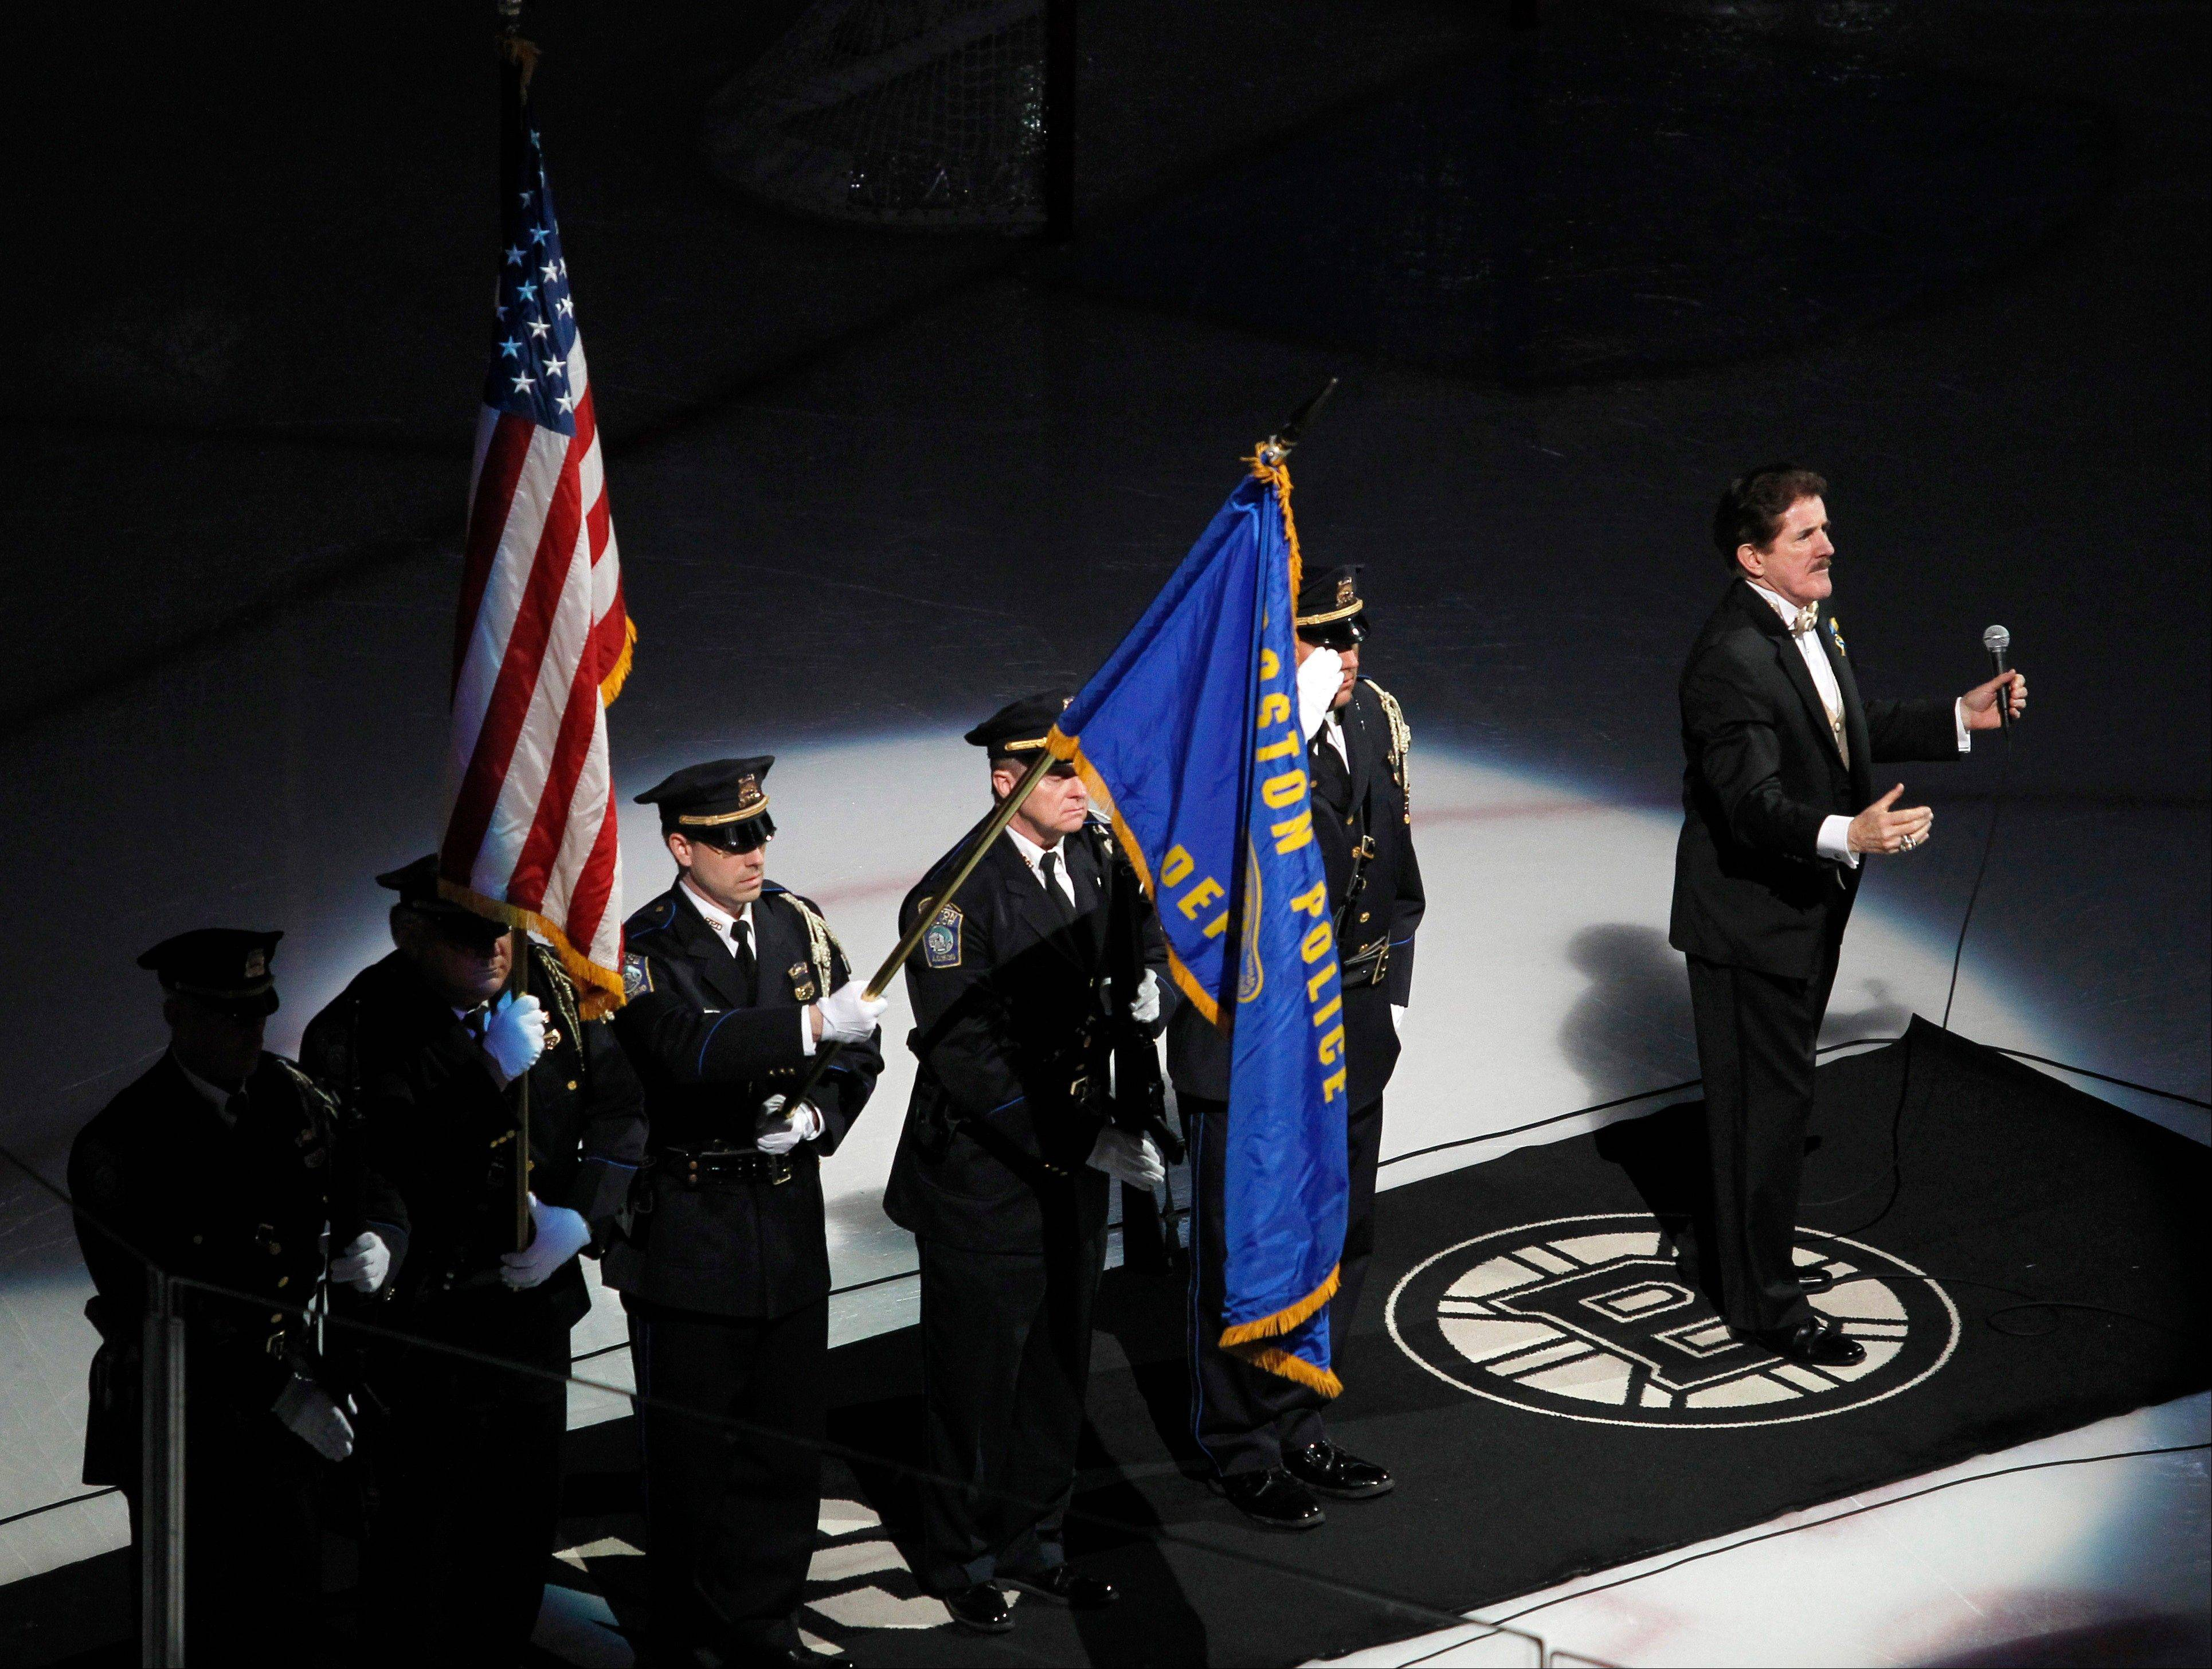 Rene Rancourt, right, conducts the crowd in the singing of the national anthem as the Boston Police honor guard presents the colors before the start of an NHL hockey game between the Pittsburgh Penguins and Boston Bruins, Saturday, April 20, 2013, in Boston.